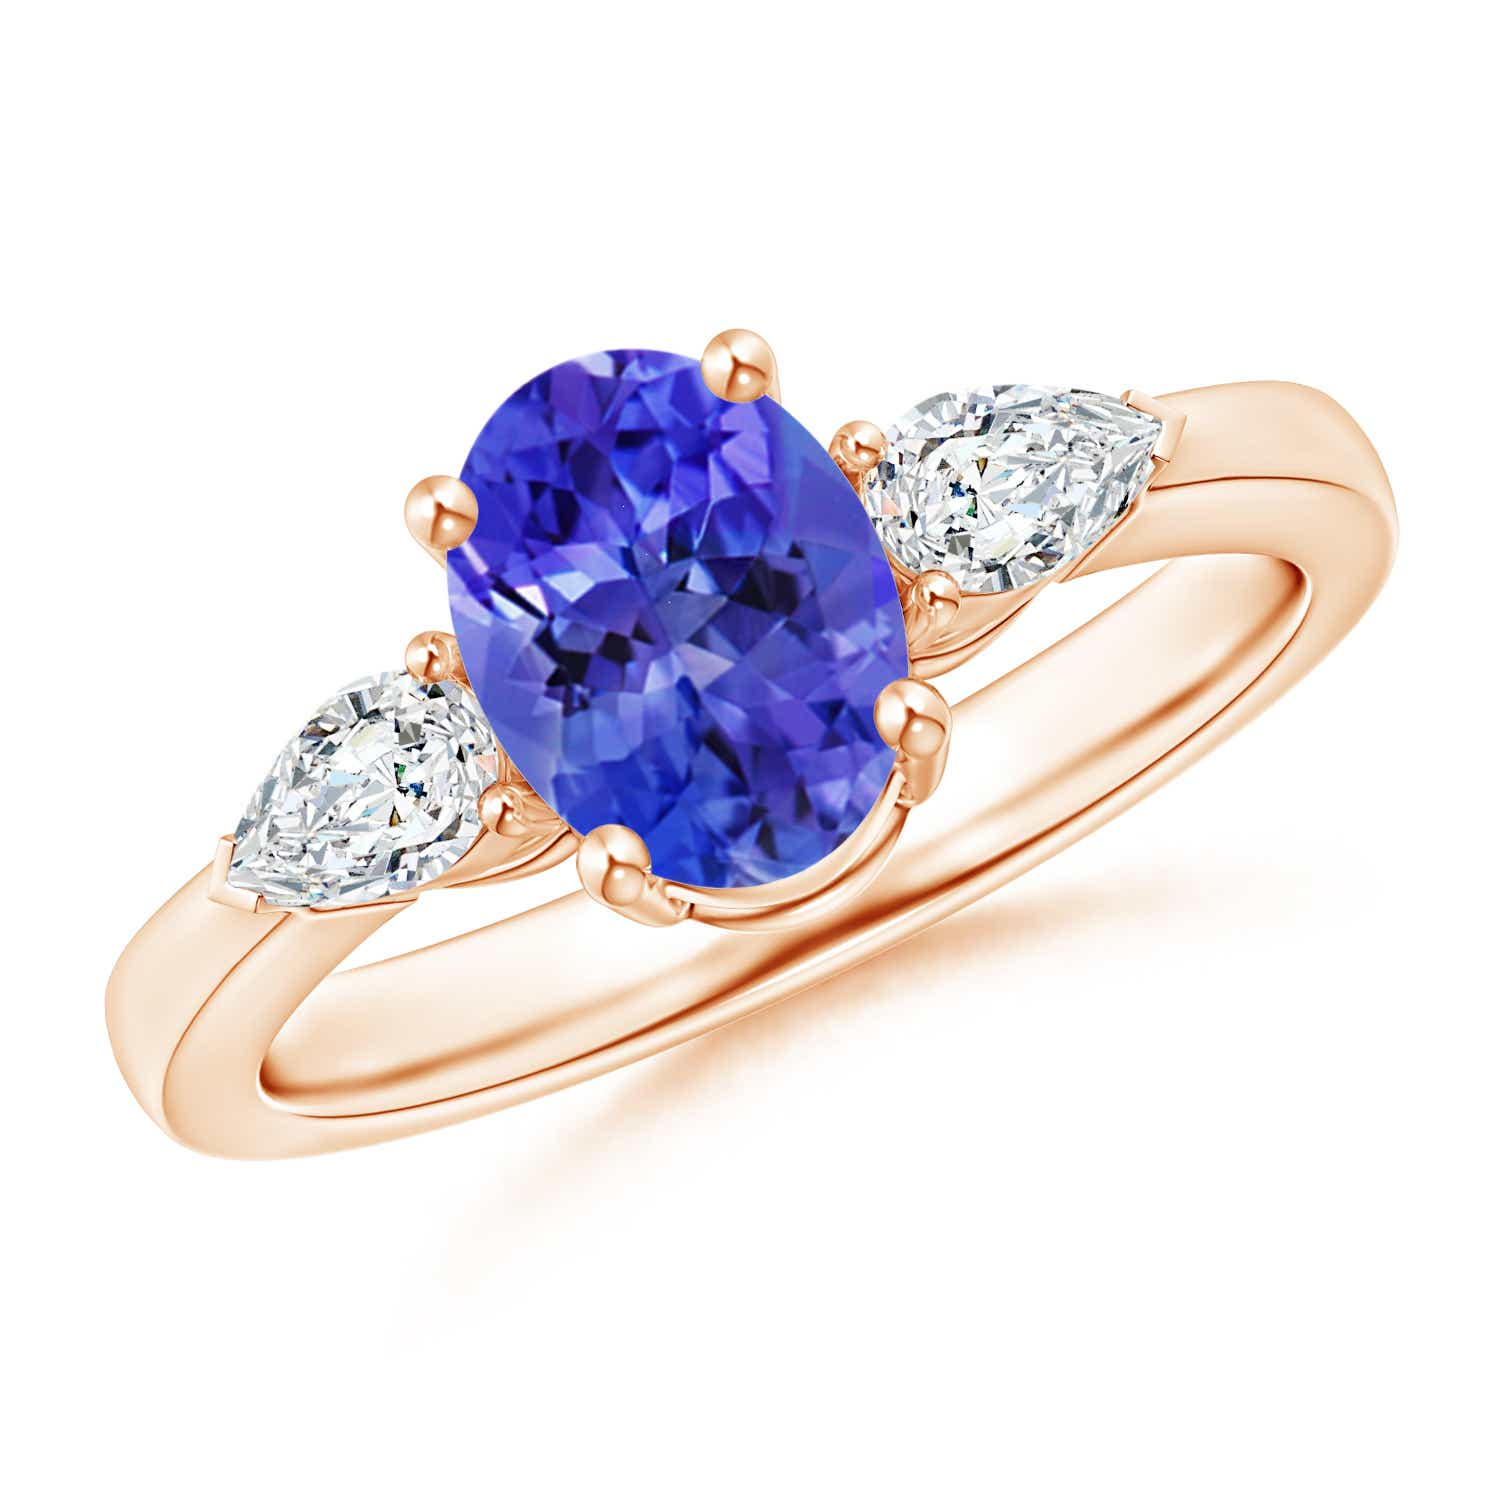 Angara V-pronged Pear Sapphire and Diamond Three Stone Ring in Yellow Gold cqjYDB